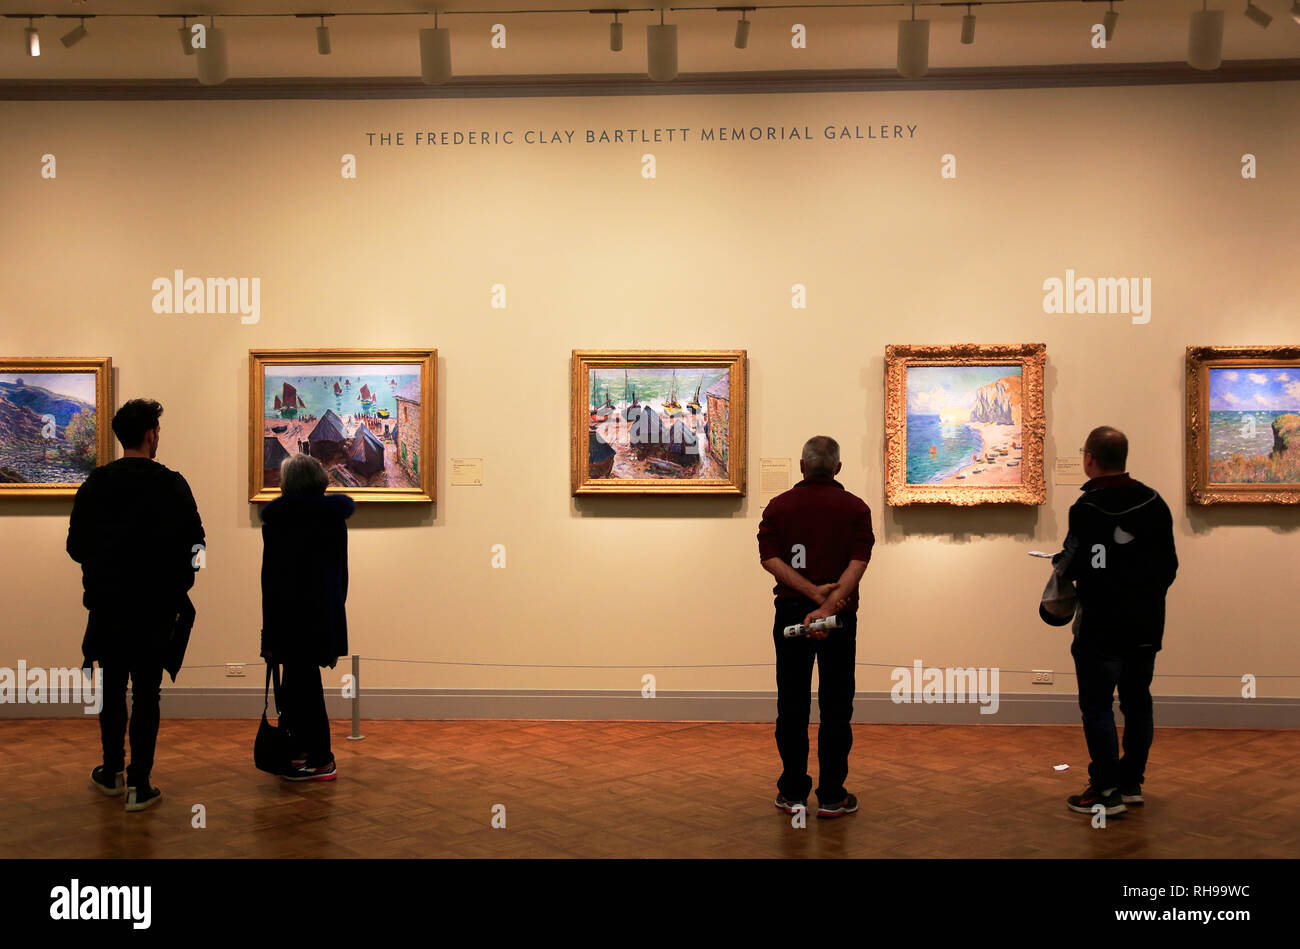 Visitors in the Frederic Clay Bartlett Memorial Gallery in Art Institute of Chicago.Chicago.Illinois.USA - Stock Image